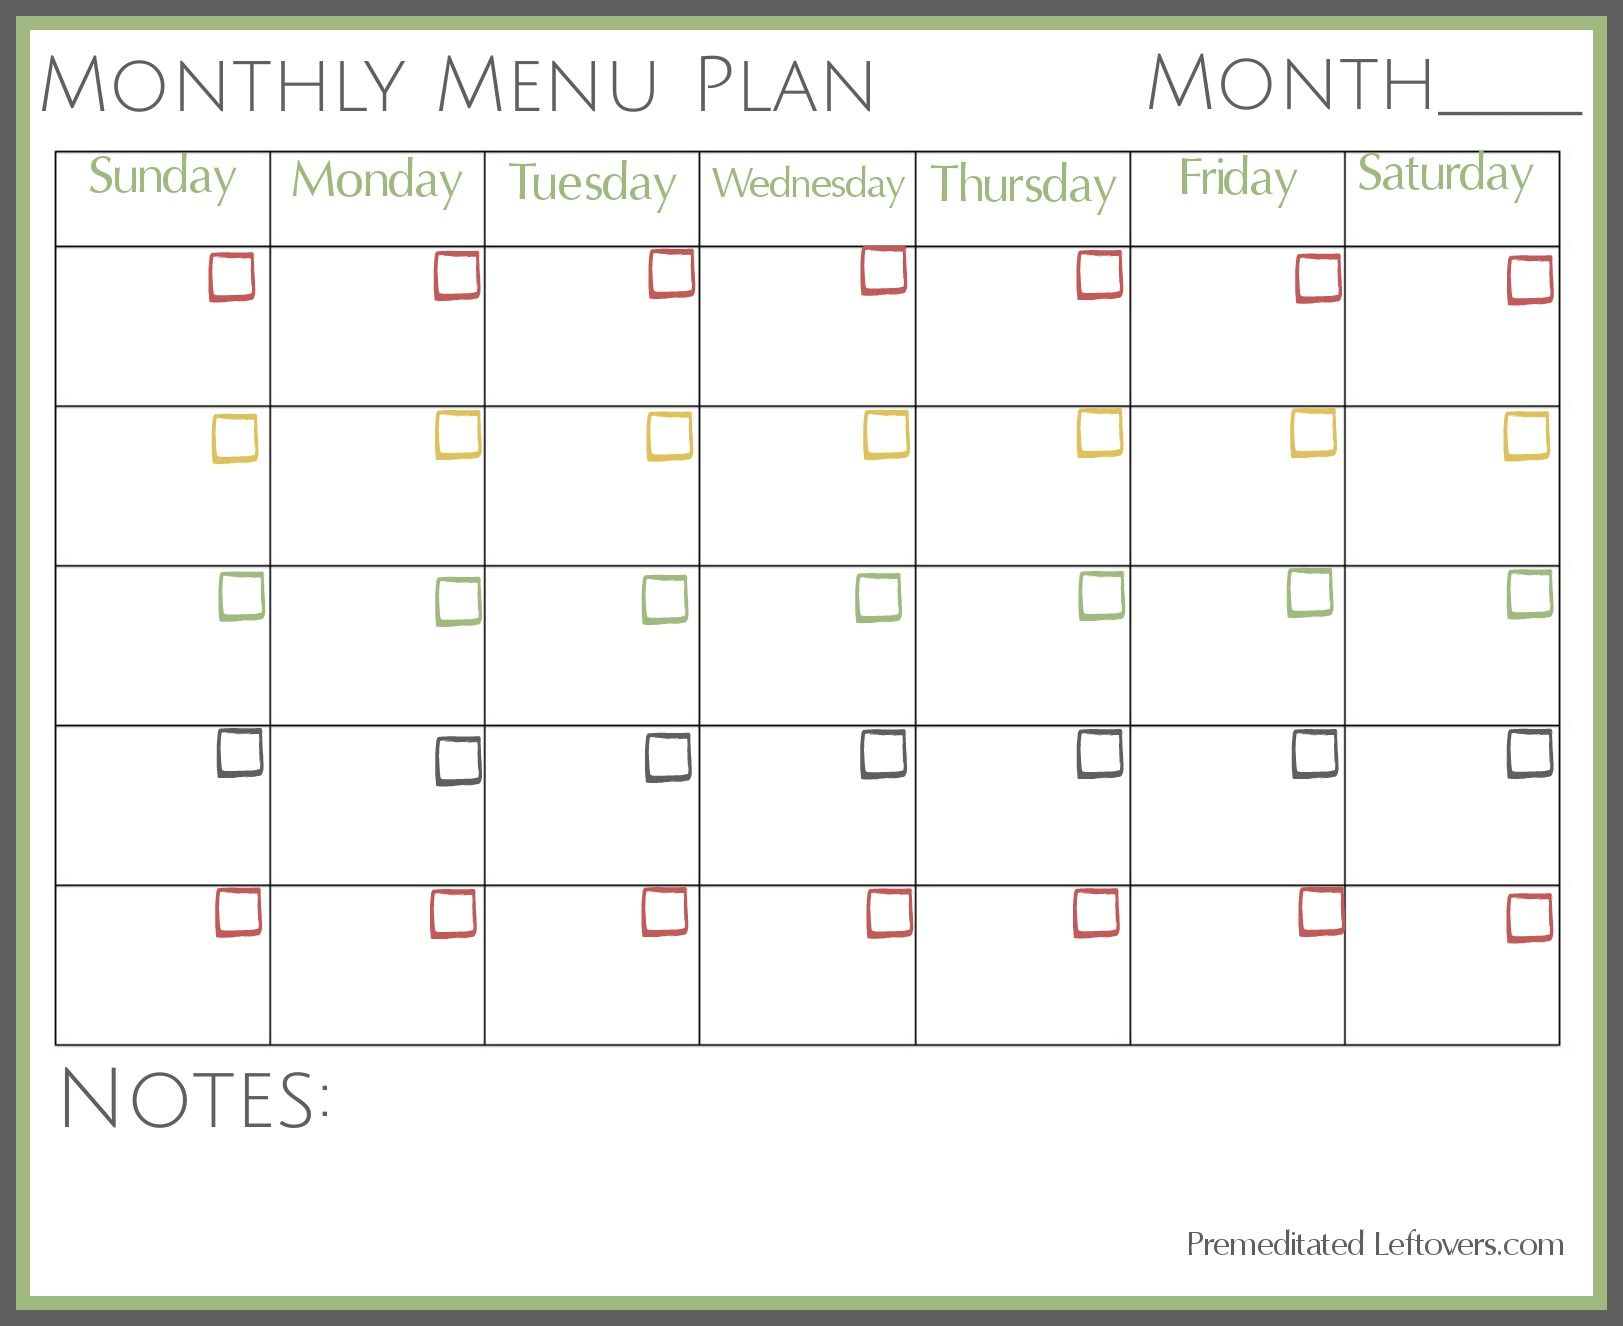 Free Printable Monthly Menu Plan | Printable Forms, Etc. | Pinterest - Free Printable Monthly Meal Planner